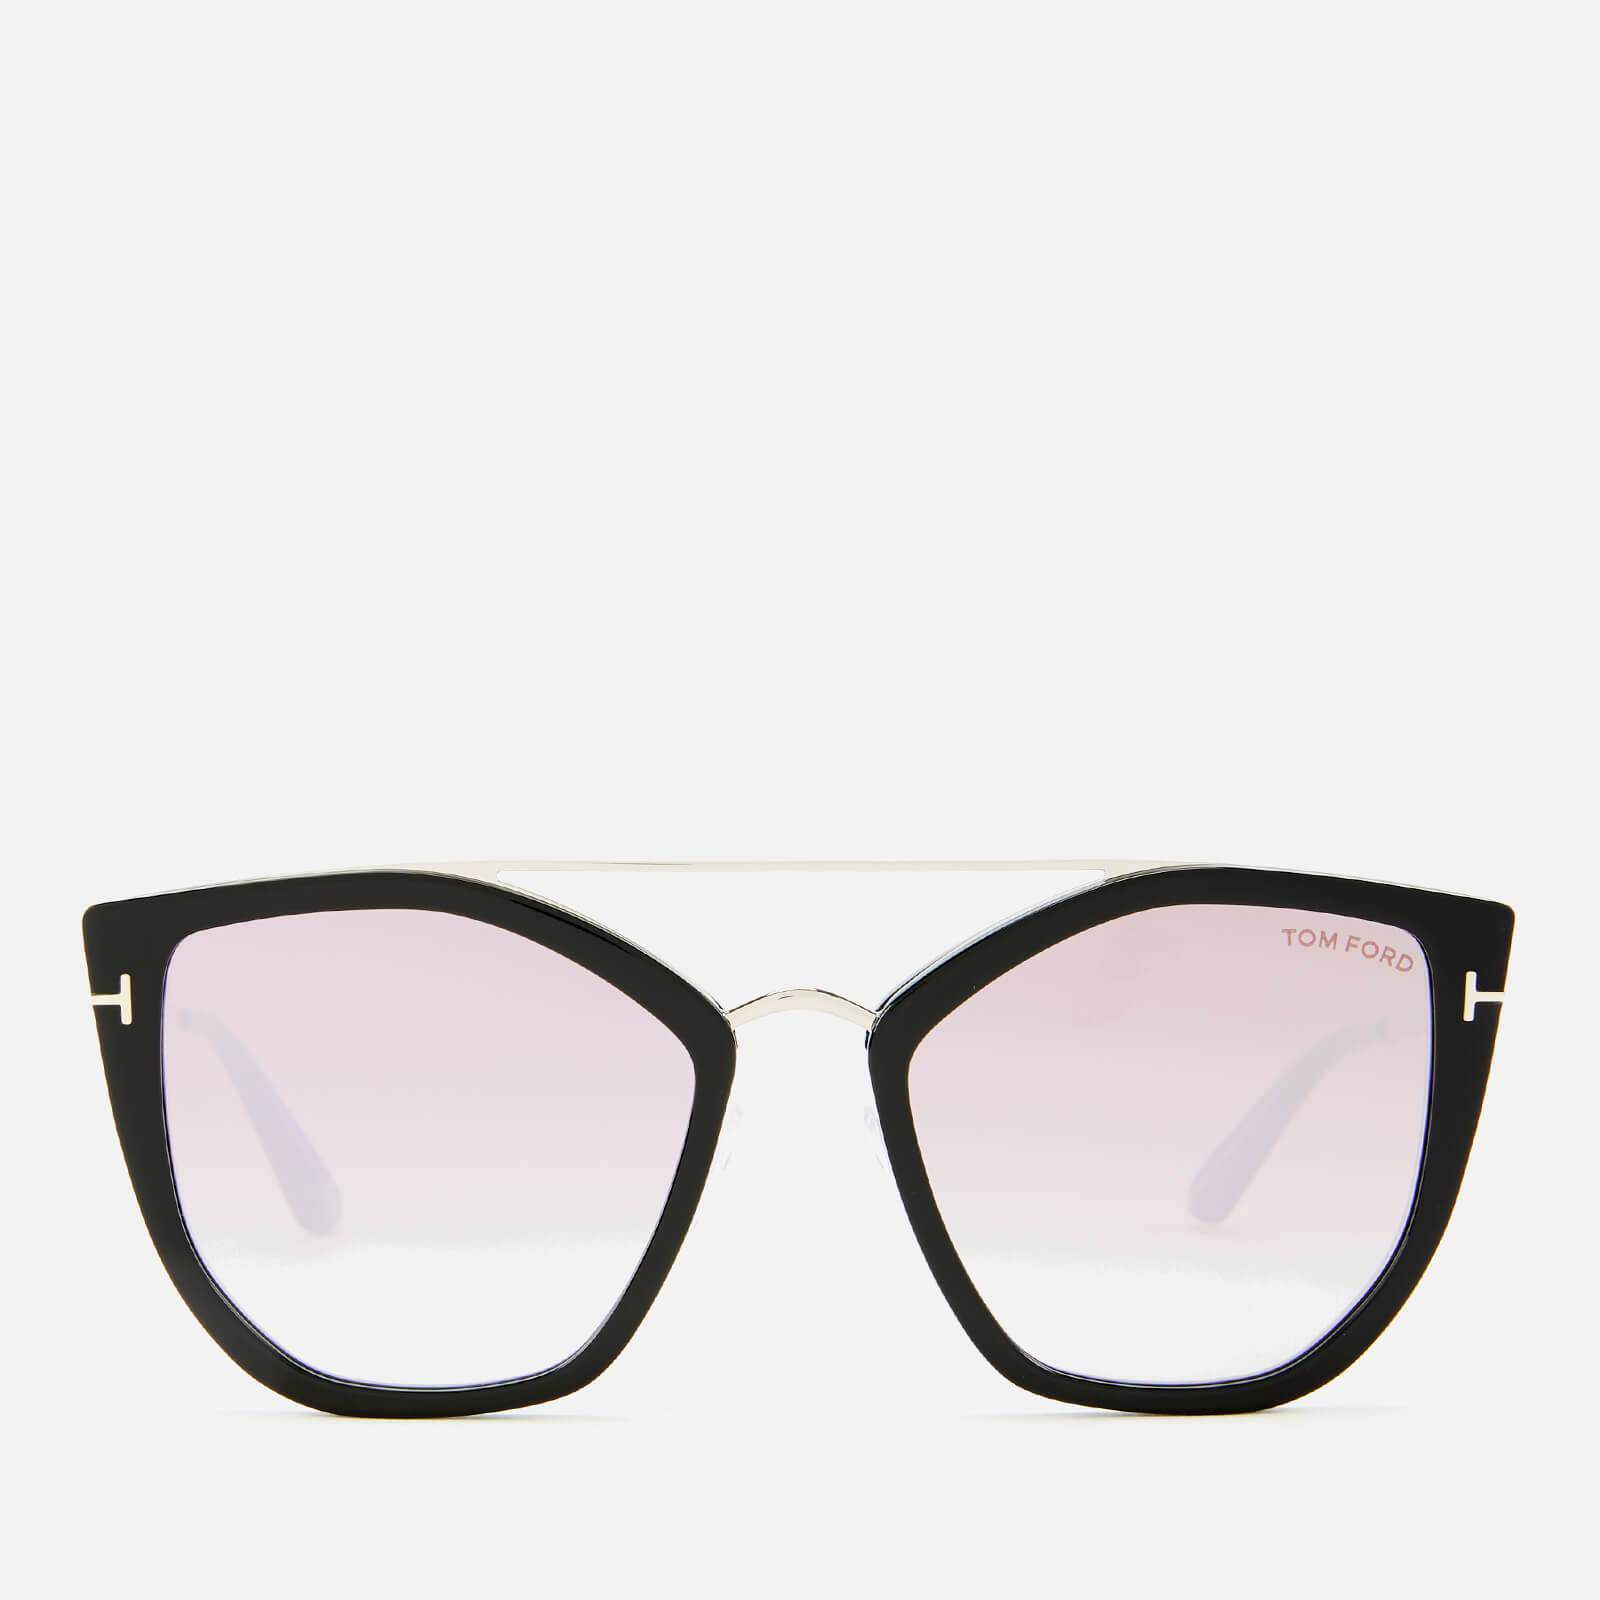 Tom Ford Women's Dahlia Sunglasses - Shiny Black/Gradient or Mirror Violet